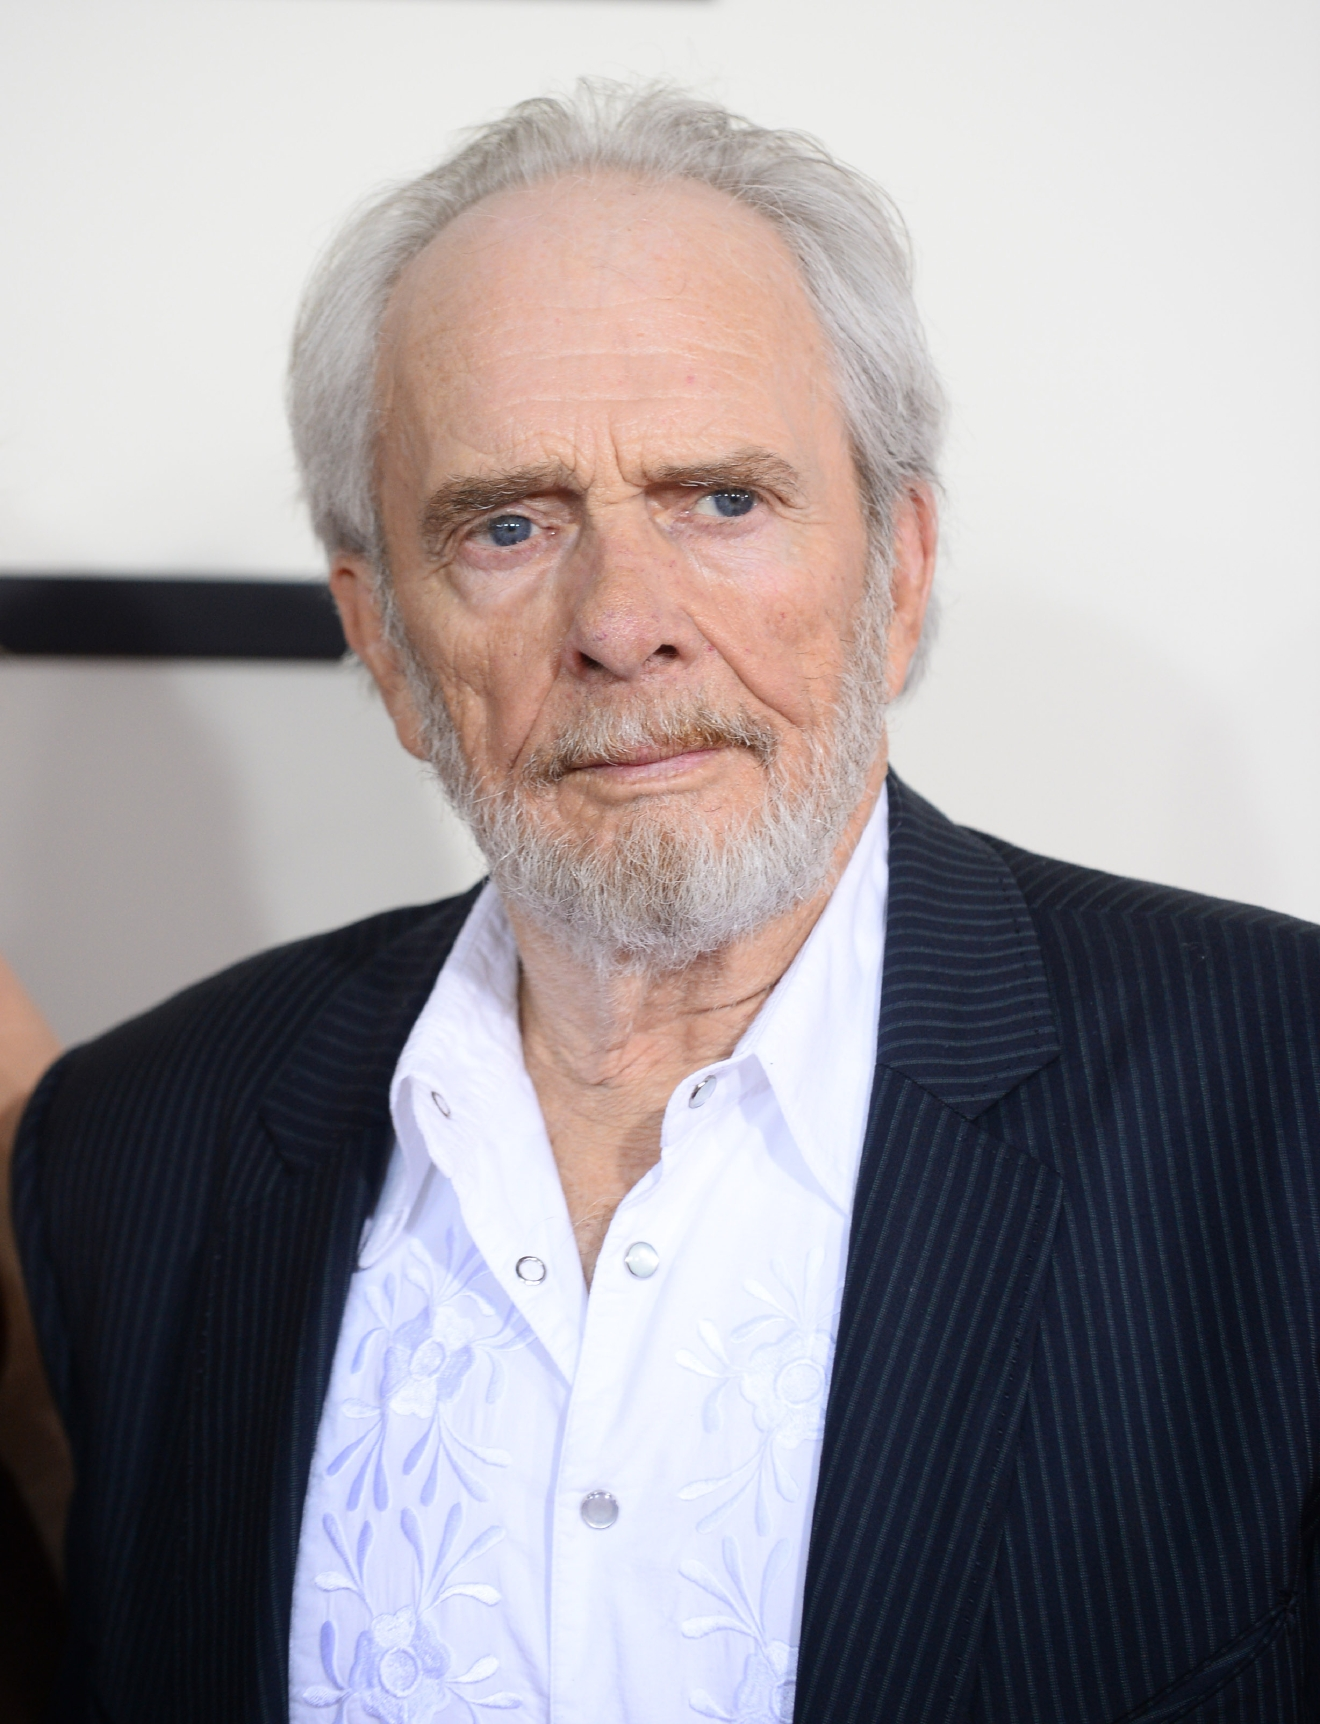 FILE - In this Jan. 26, 2014 file photo, Merle Haggard arrives at the 56th annual GRAMMY Awards in Los Angeles. Haggard died of pneumonia, Wednesday, April 6, 2016, in Palo Cedro, Calif. He was 79. (Photo by Jordan Strauss/Invision/AP, File)